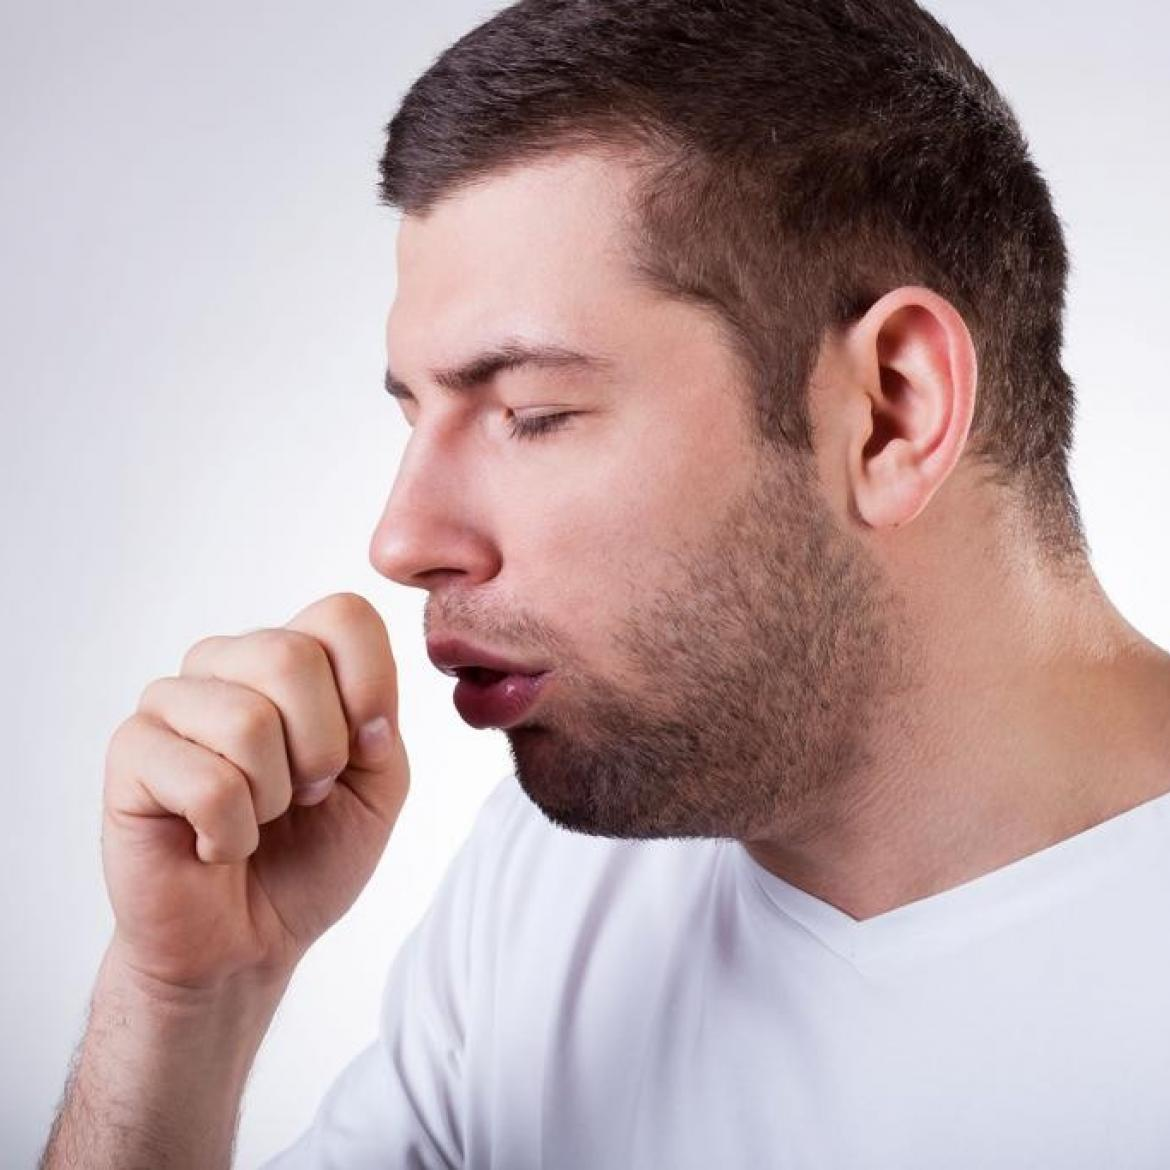 http://www.4newsmagazine.com.br/sites/default/files/bigstock-sick-man-having-a-cough-65202781-ke0b-u1017204809271zg-1024x683gp-web.jpg